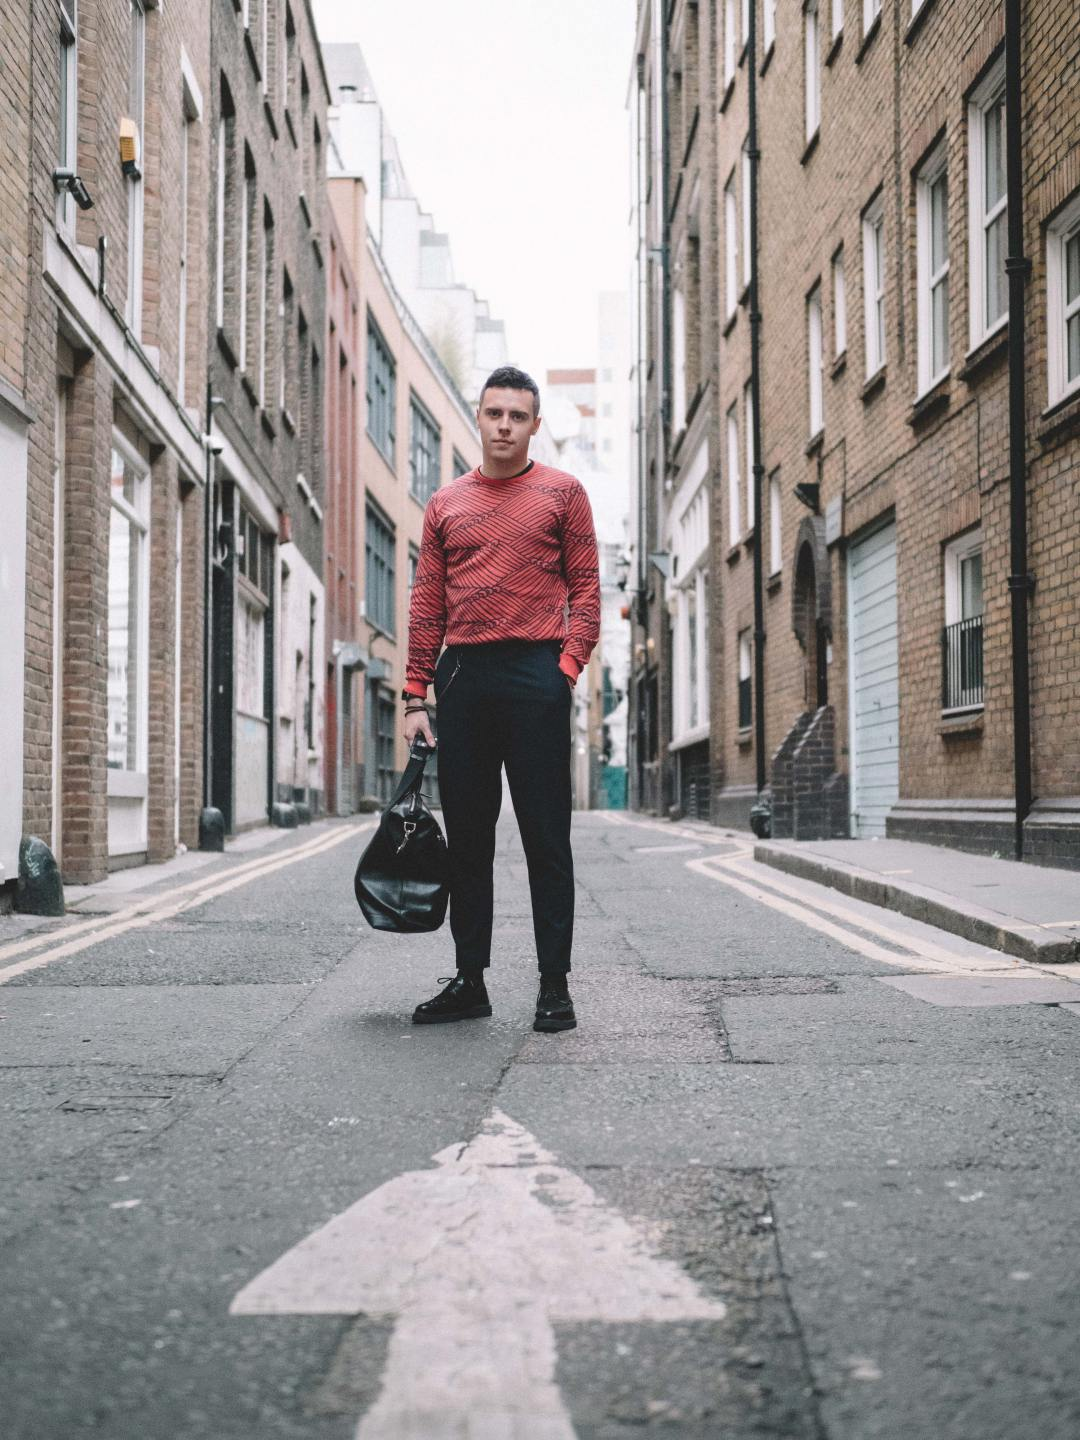 John Smedley's Seaham in Ruche Red/Flannel Grey, crafted from a sumptuous fine knit Sea Island Cotton. Also wearing The Anderson Tote in Black from Aspinal of London. Shot by Mervin Kaye. Blog by Skirmantas Petraitis.